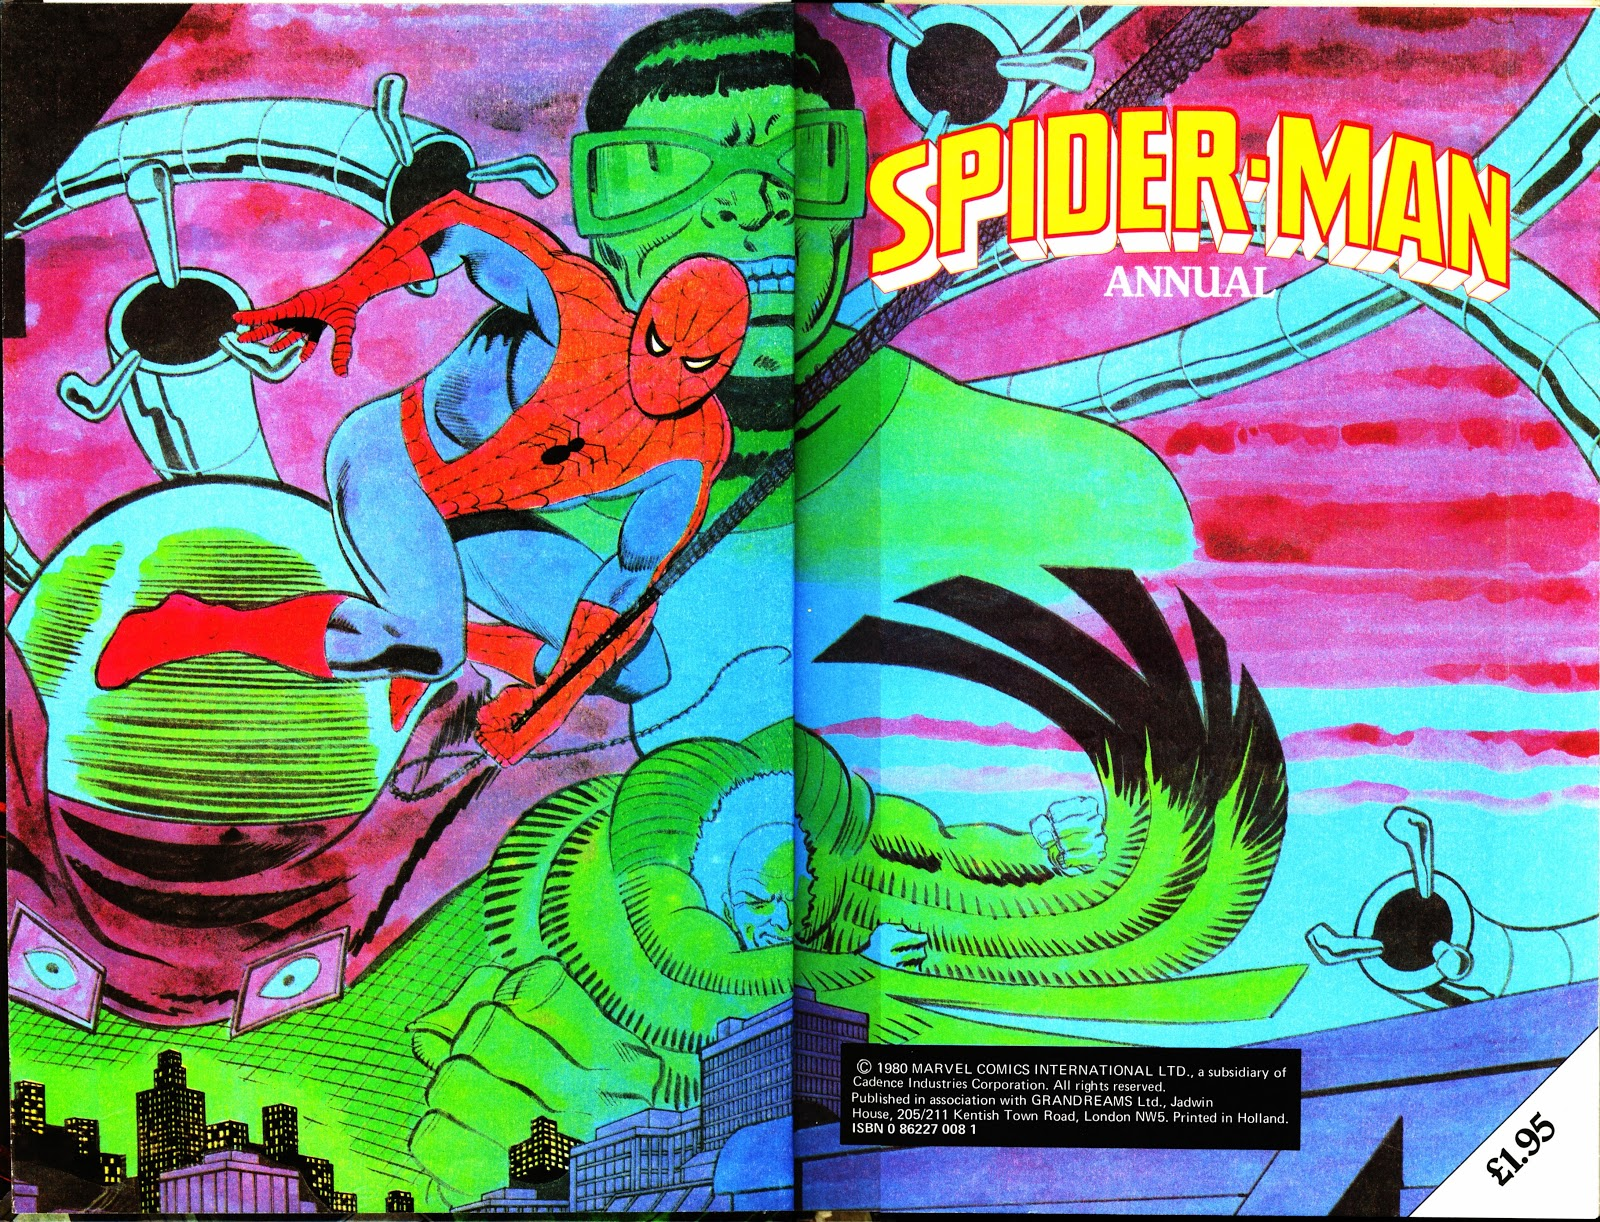 Spider-Man Annual (1974) 1981 Page 2